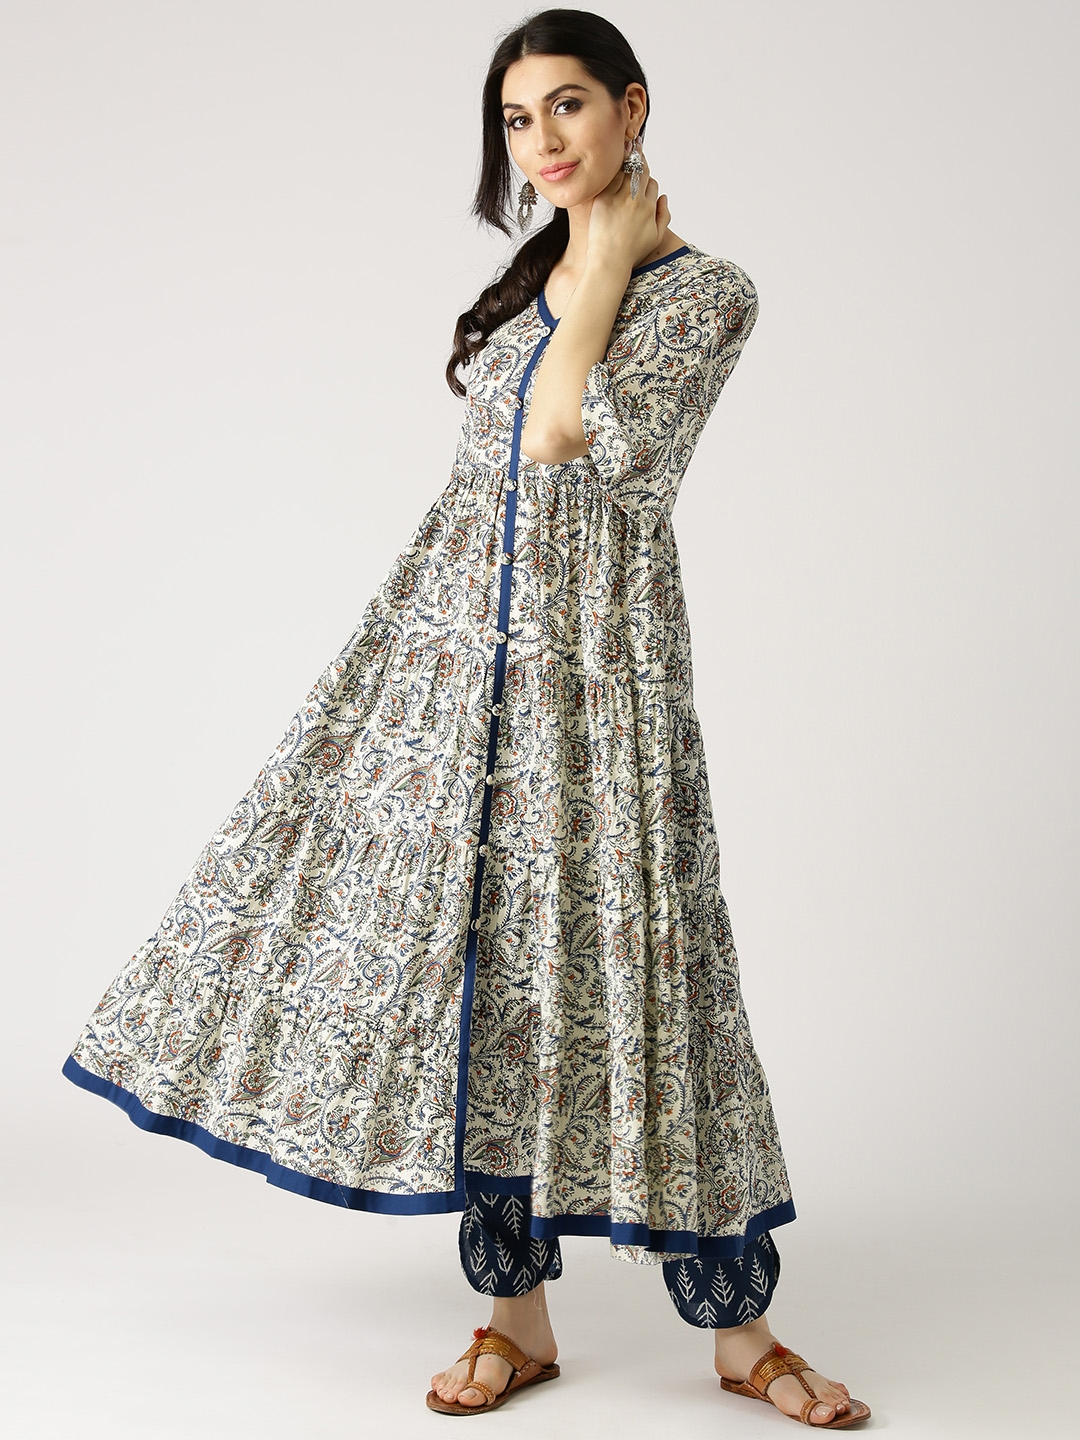 6295b916a Libas Women Off-White   Navy Blue Printed Kurta with Trousers. This product  is already at its best price